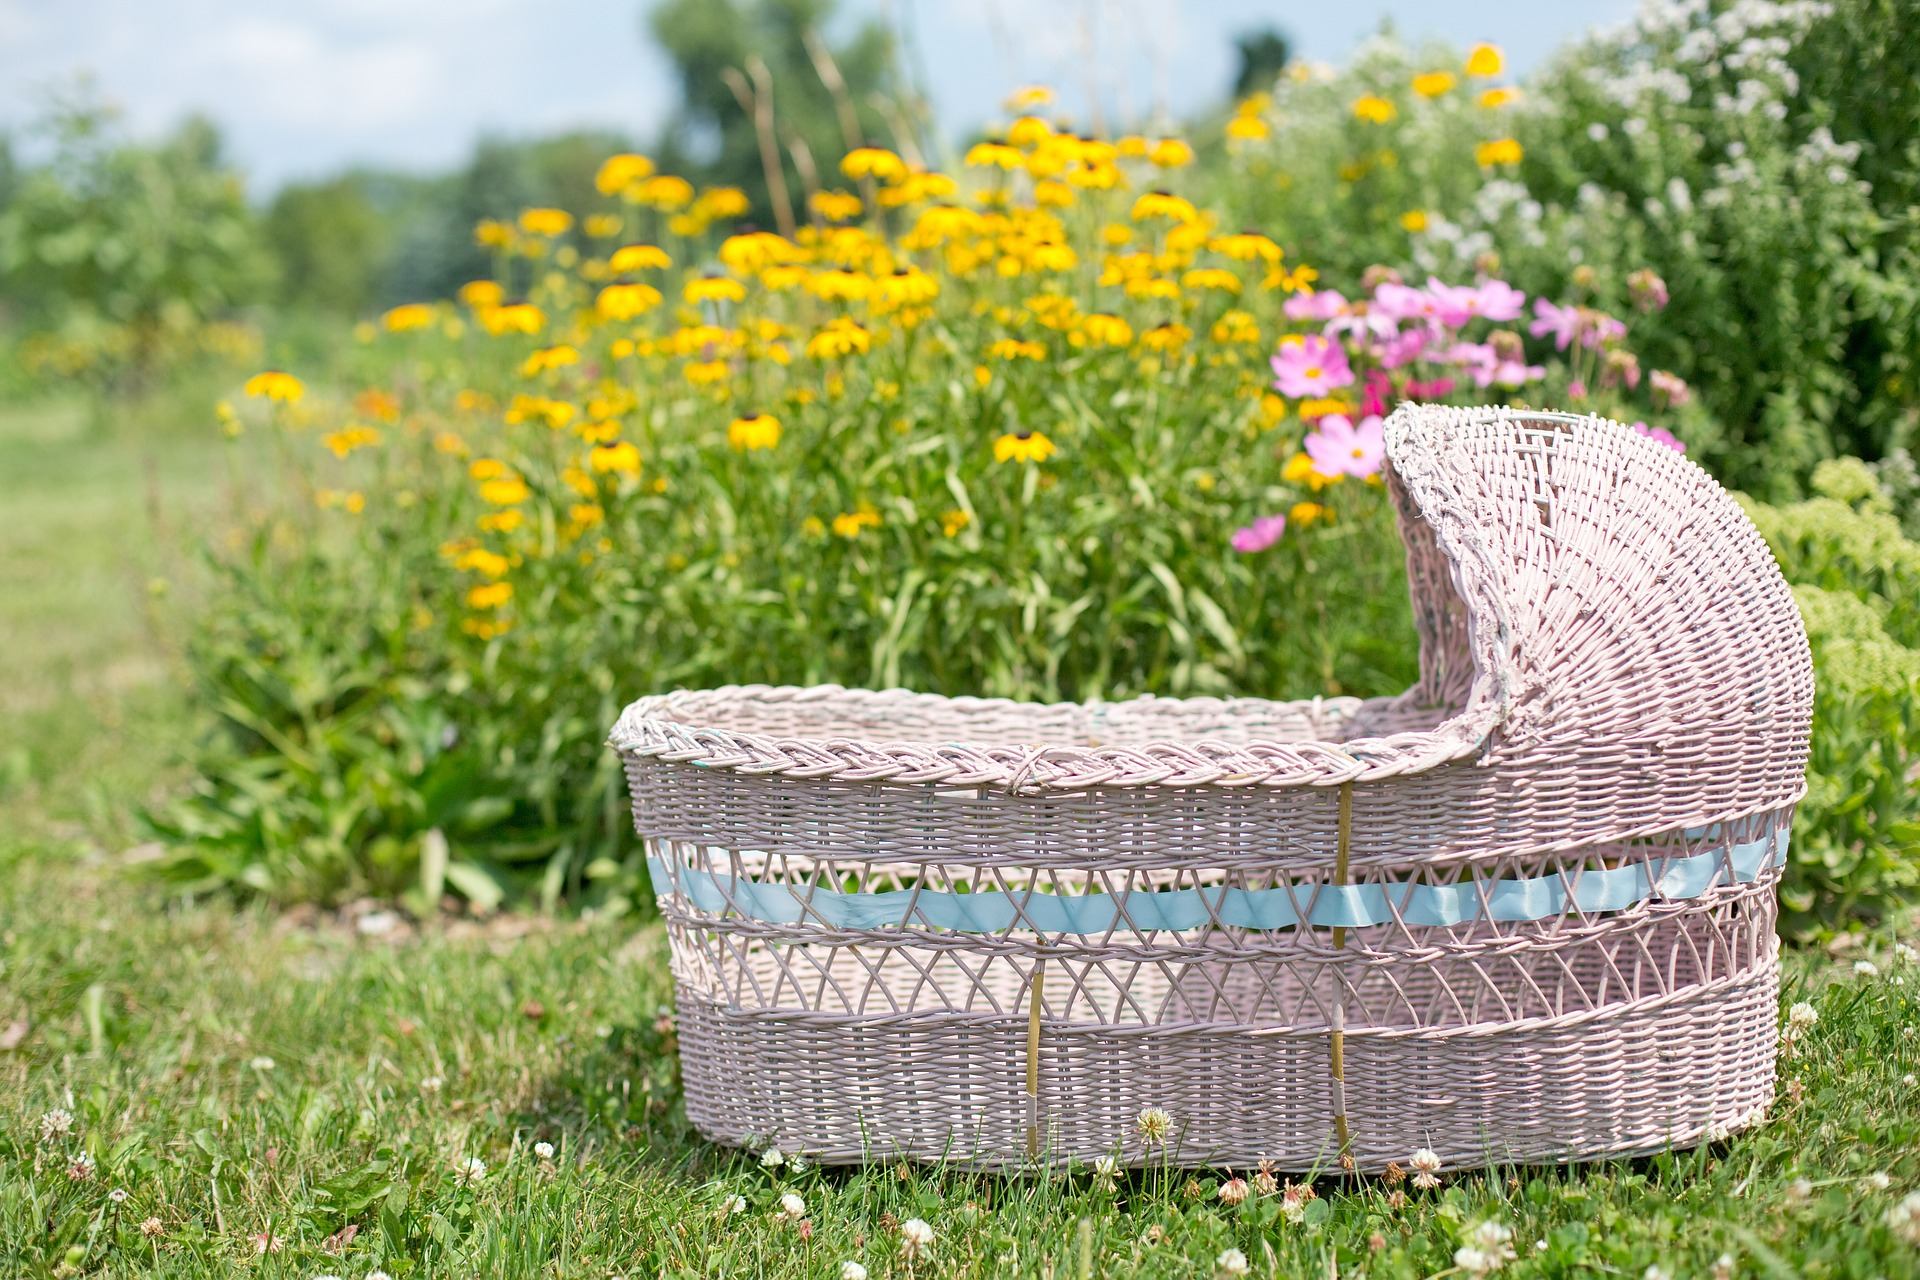 Bassinet in the Garden, Garden, Object, Nature, Flower, HQ Photo